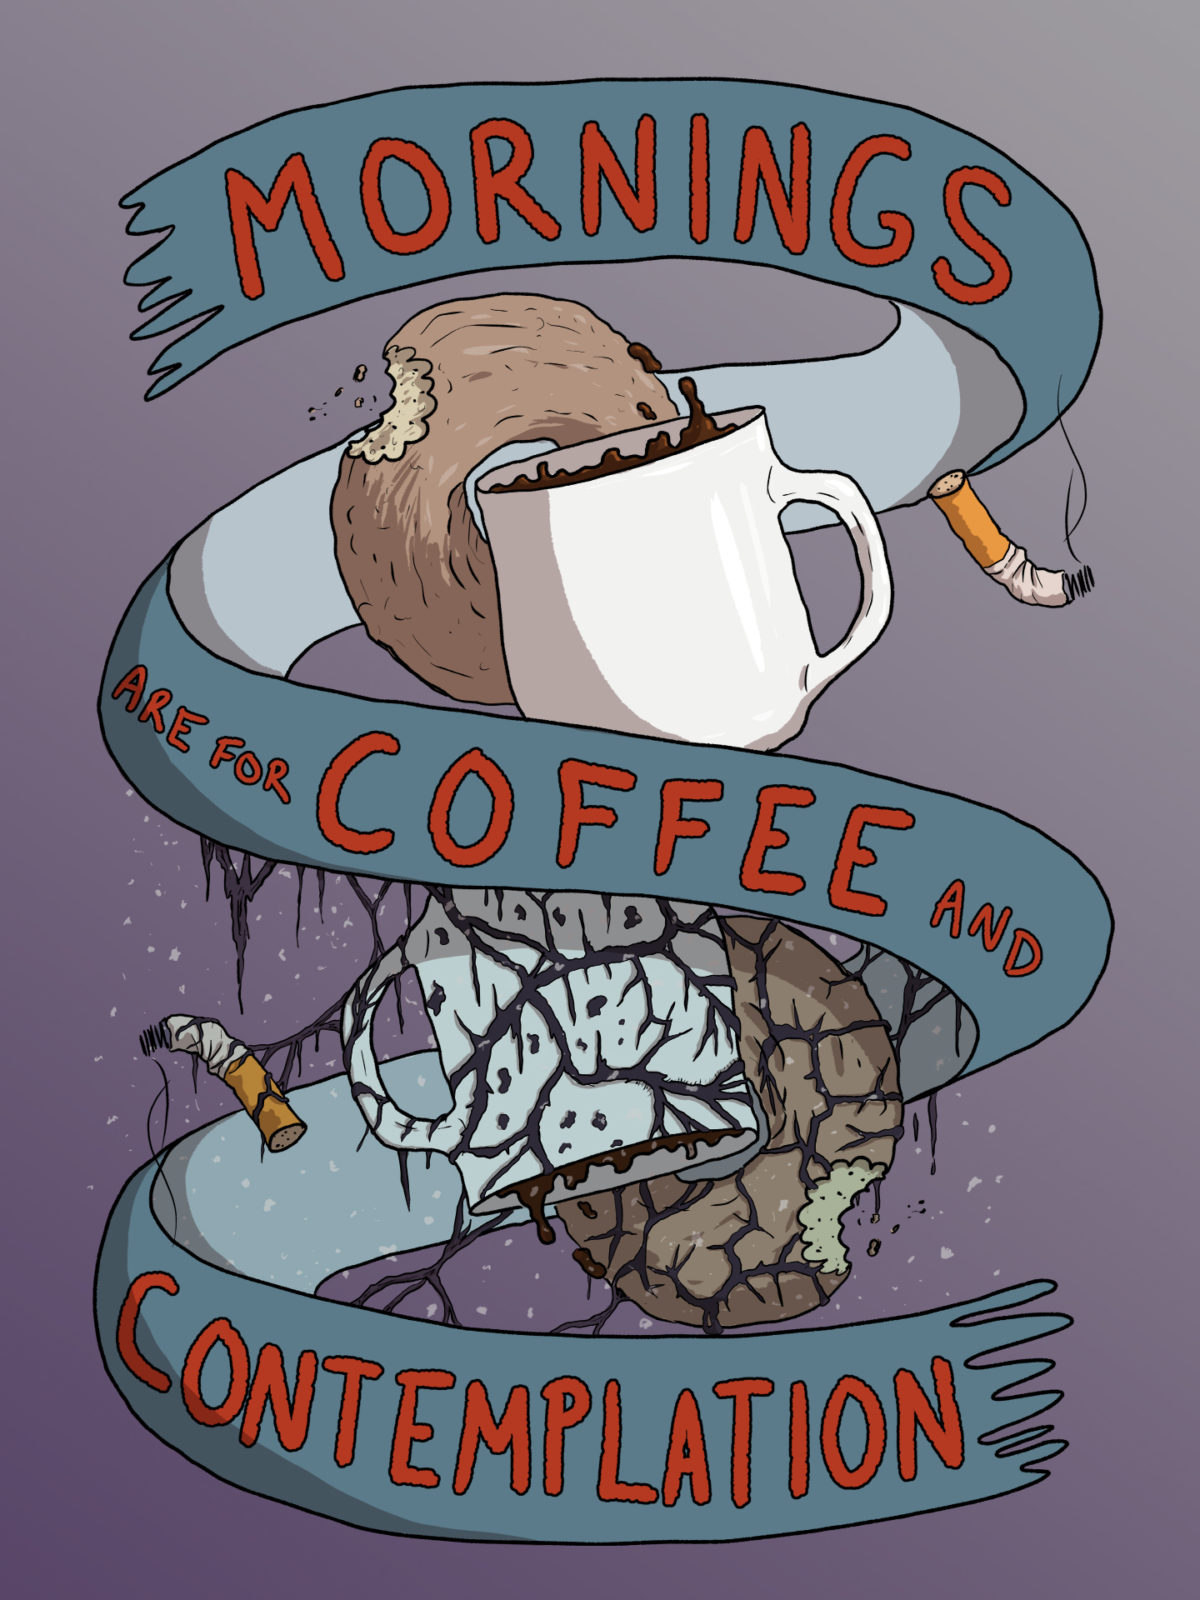 """Fan Art of Stranger Things with the text """"Mornings are for Coffee and Contemplation"""""""